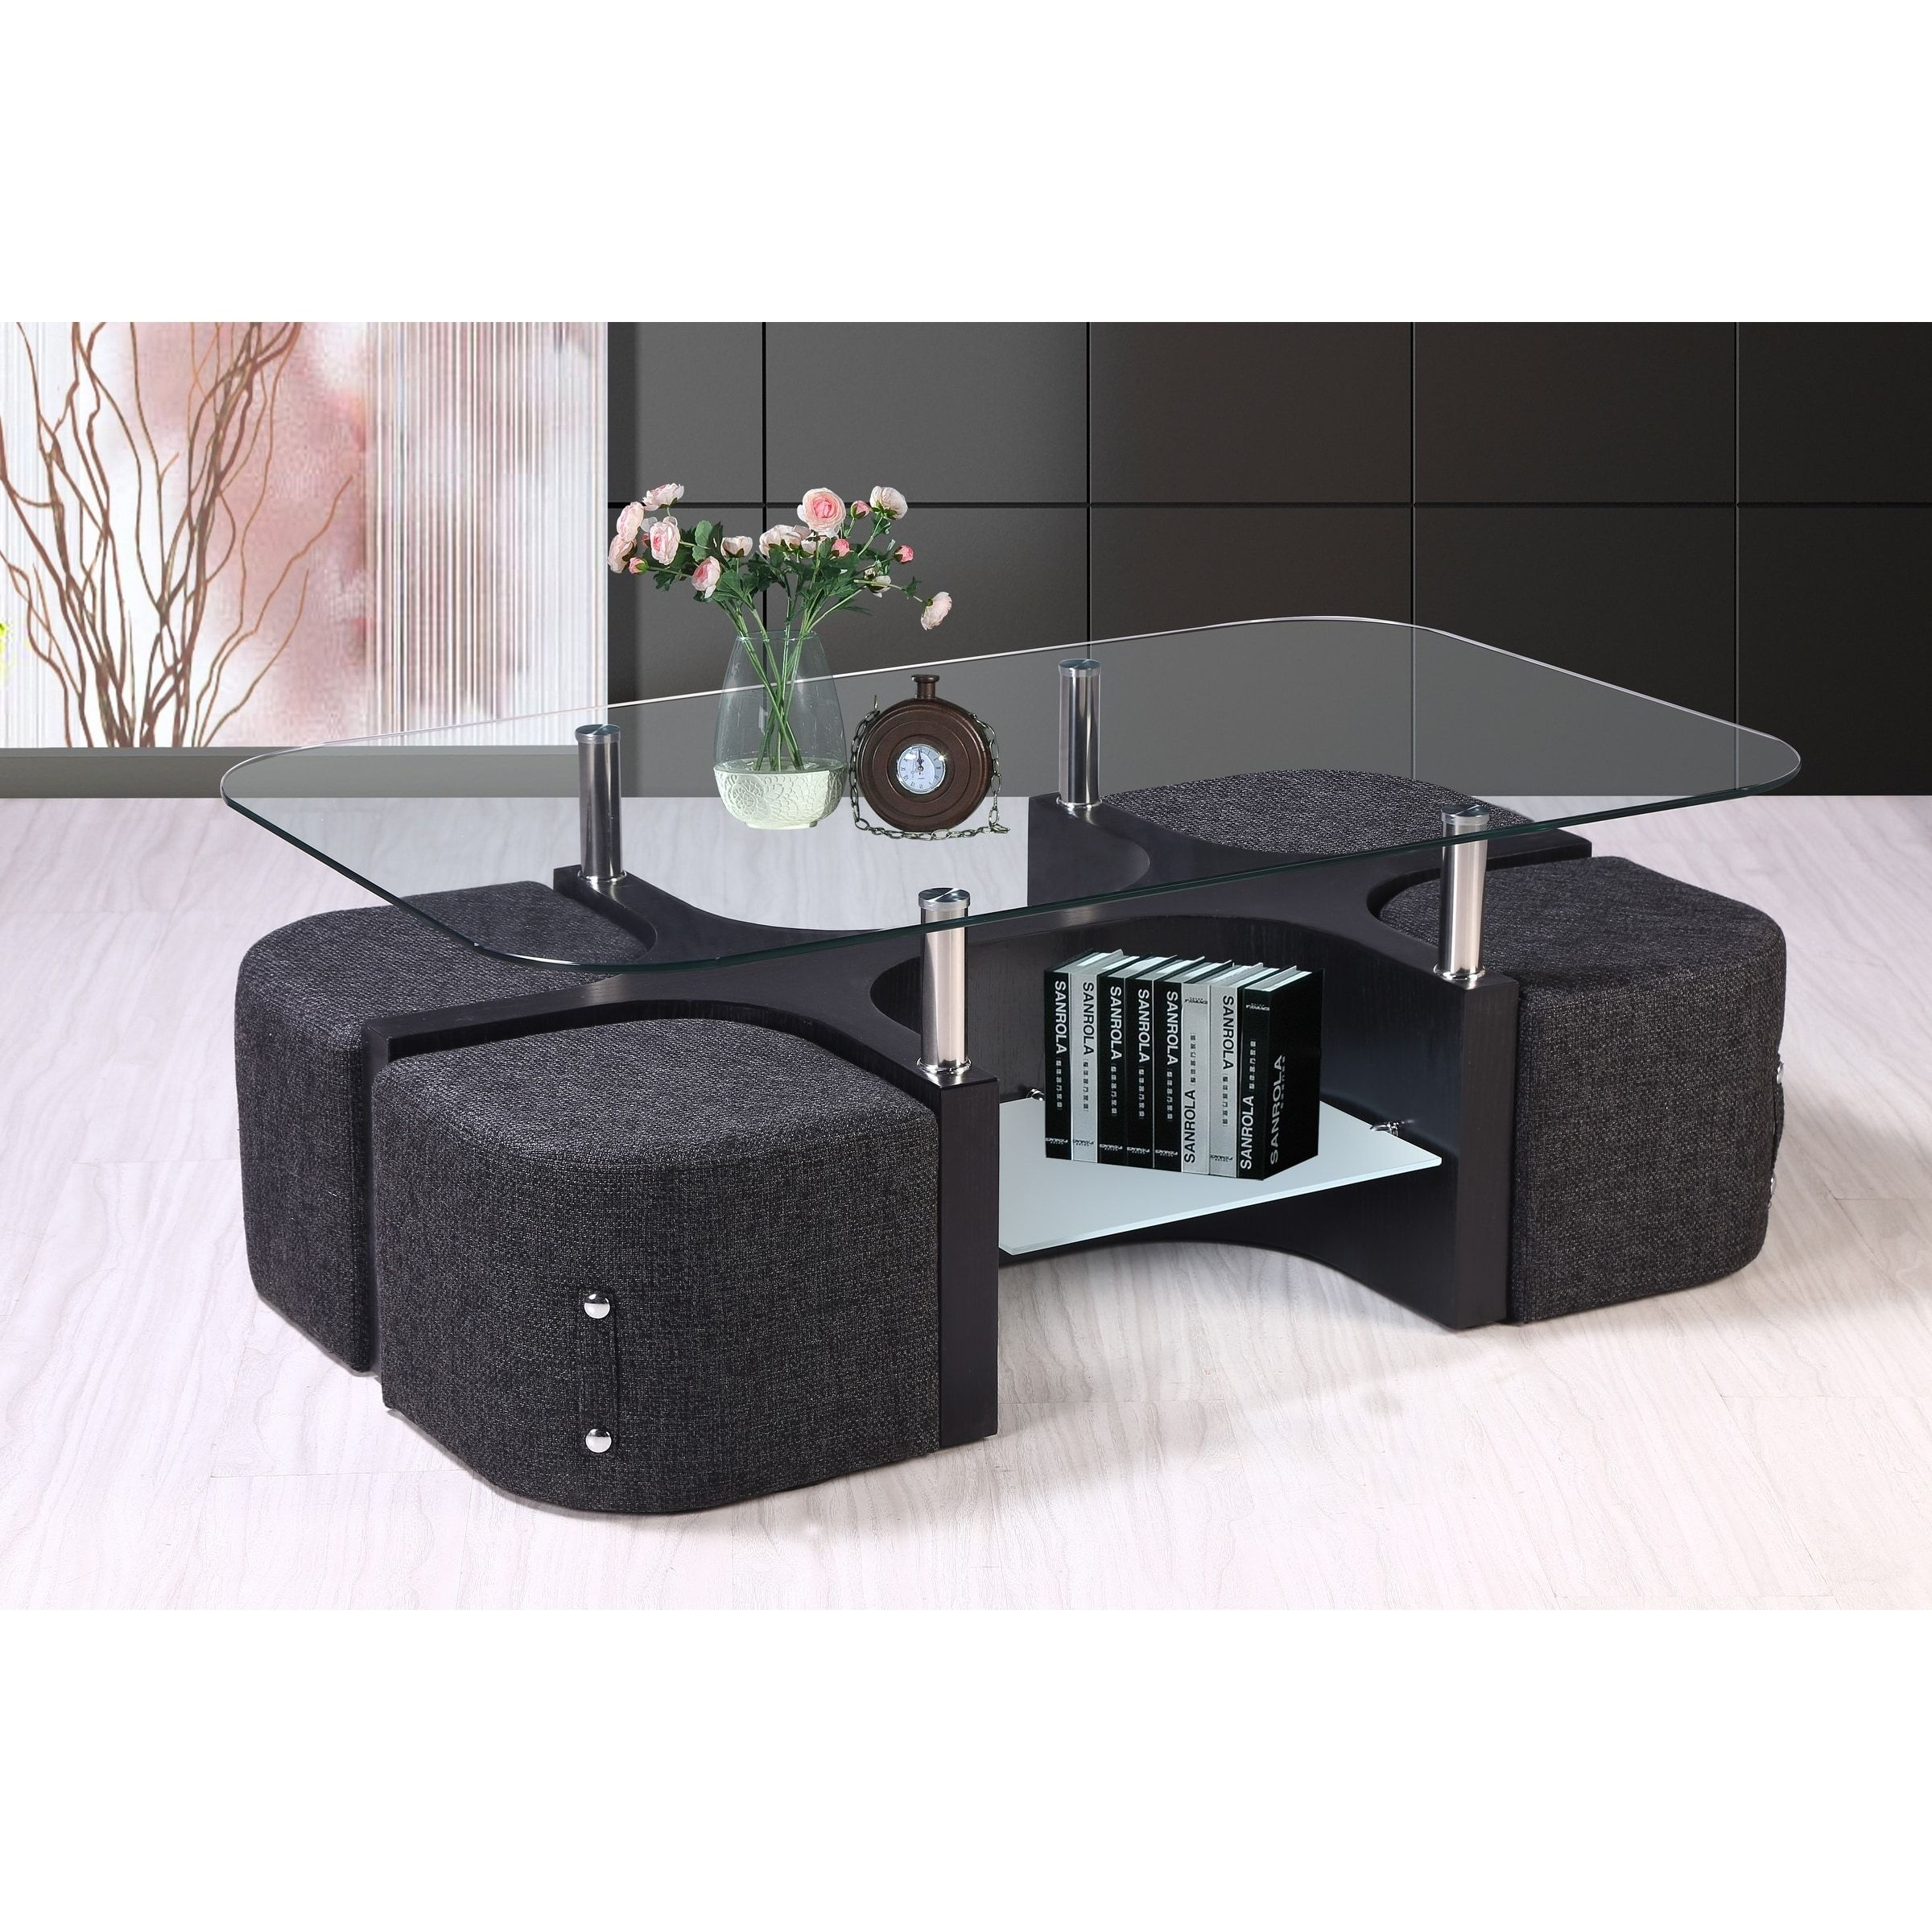 Overstock Com Online Shopping Bedding Furniture Electronics Jewelry Clothing More Coffee Table Coffee Table With Stools Coffee Table Design [ 2400 x 2400 Pixel ]